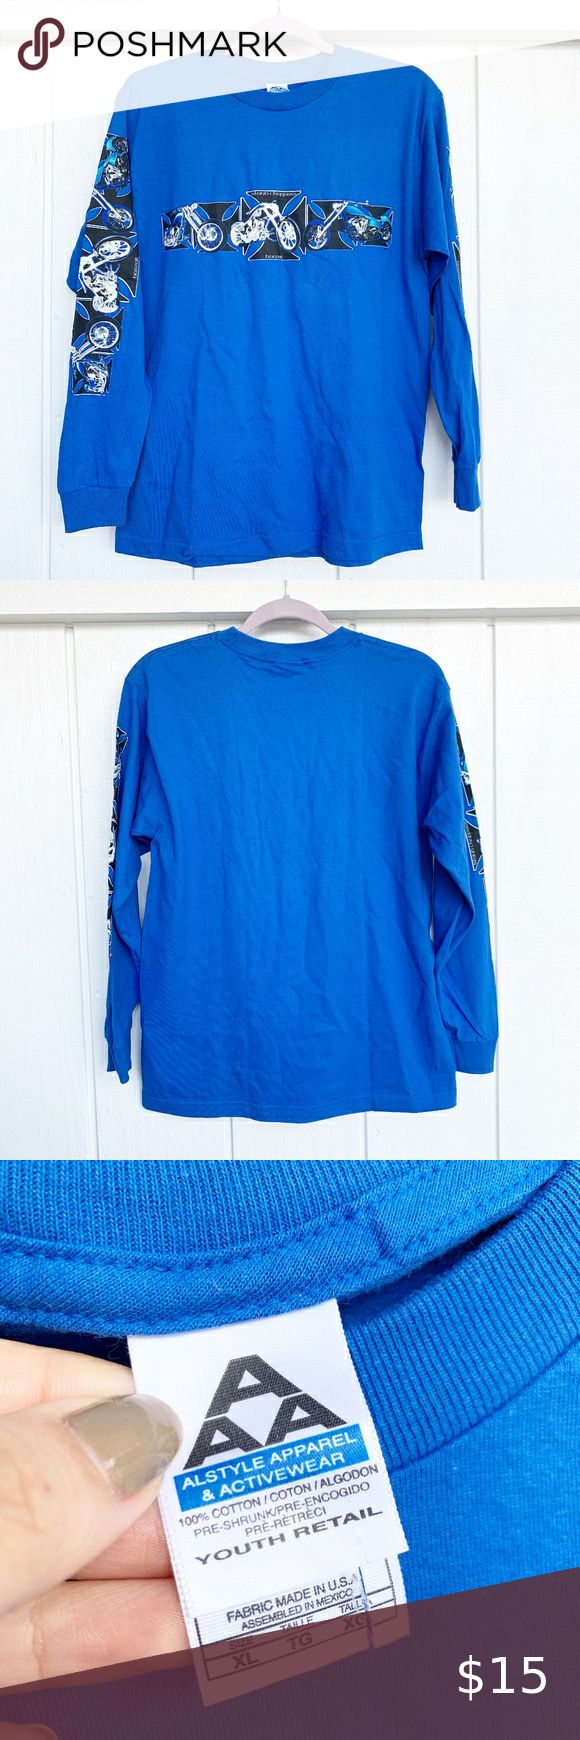 Sale Alstyle Apparel Activewear Top Youth Xl Alstyle Apparel Active Wear Tops Long Sleeve Tees